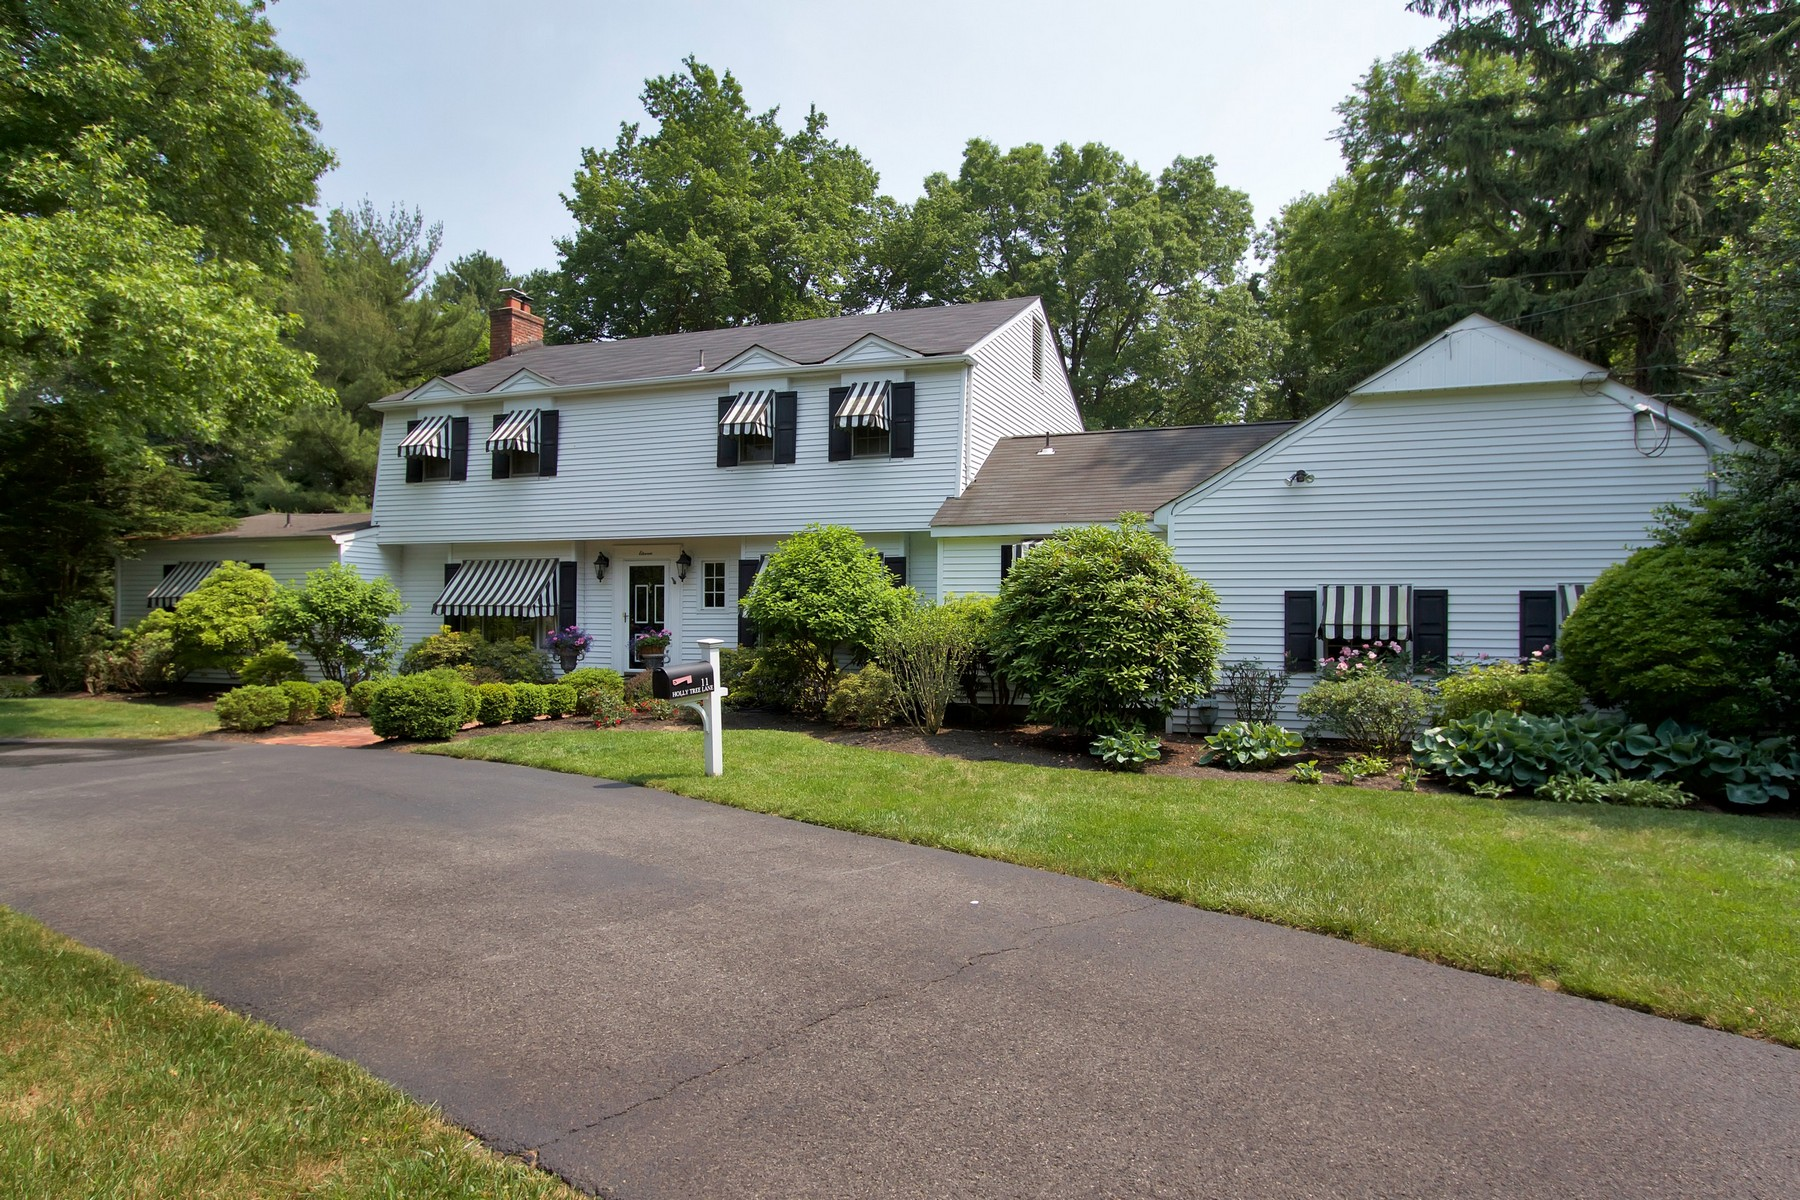 Single Family Home for Sale at Rumson Classic Colonial 11 Holly Tree Lane Rumson, New Jersey, 07760 United States